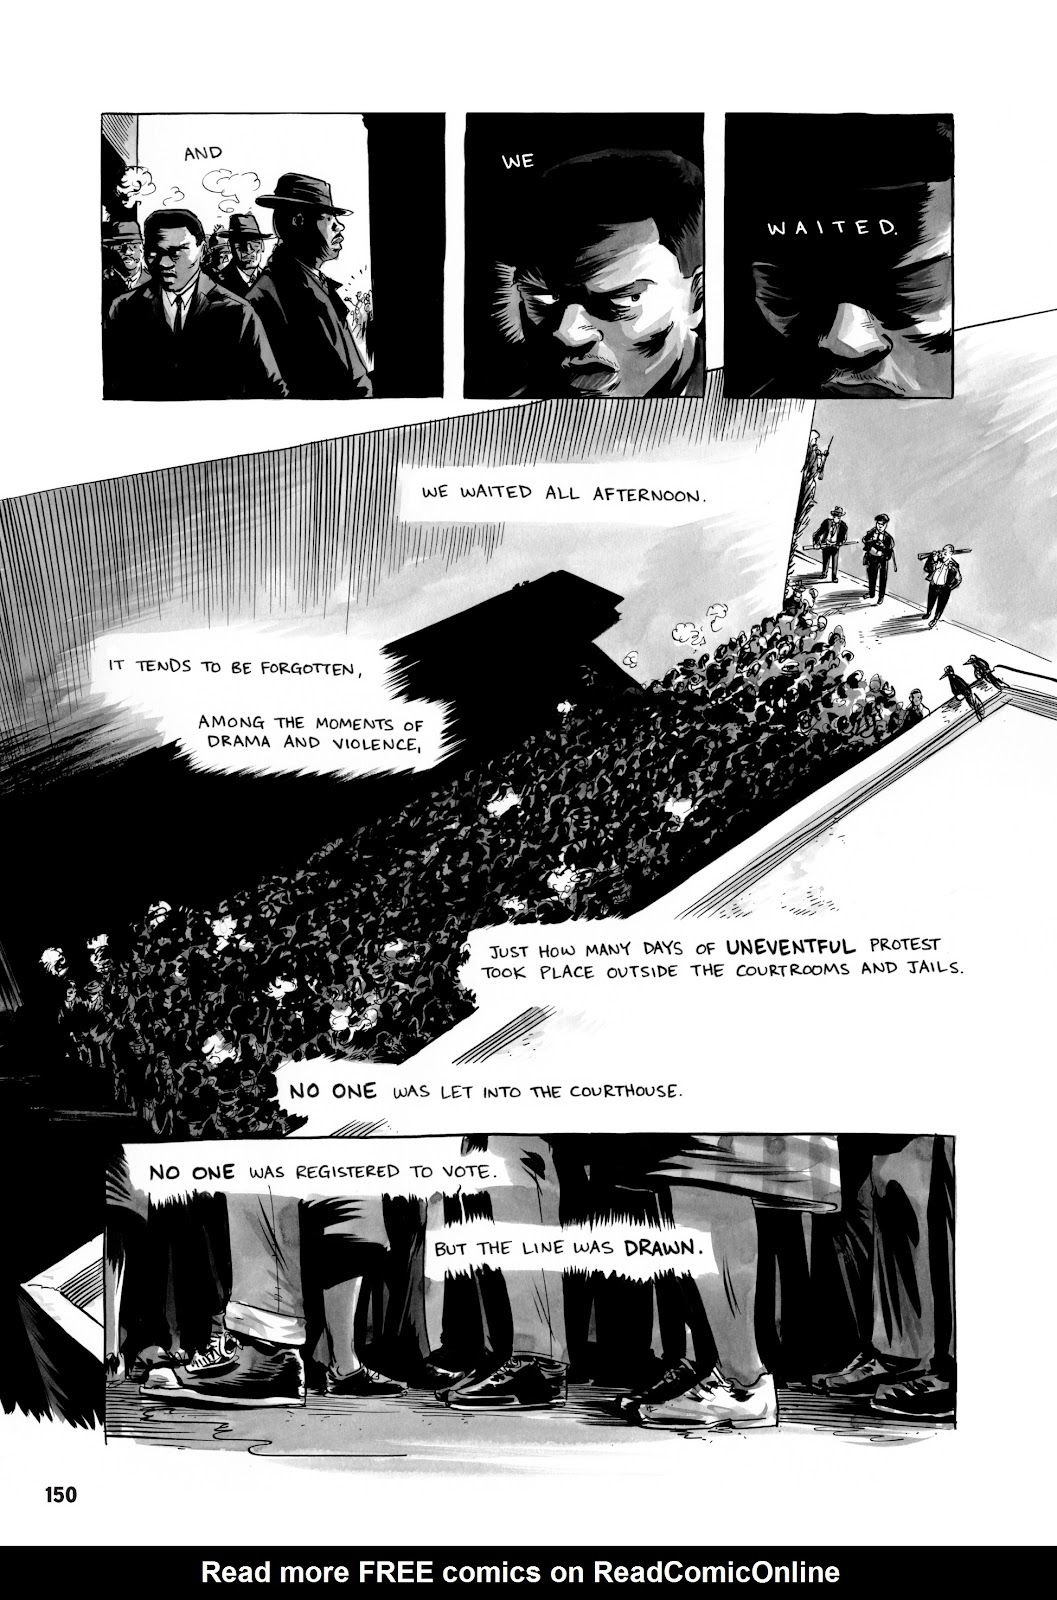 March 3 Page 145